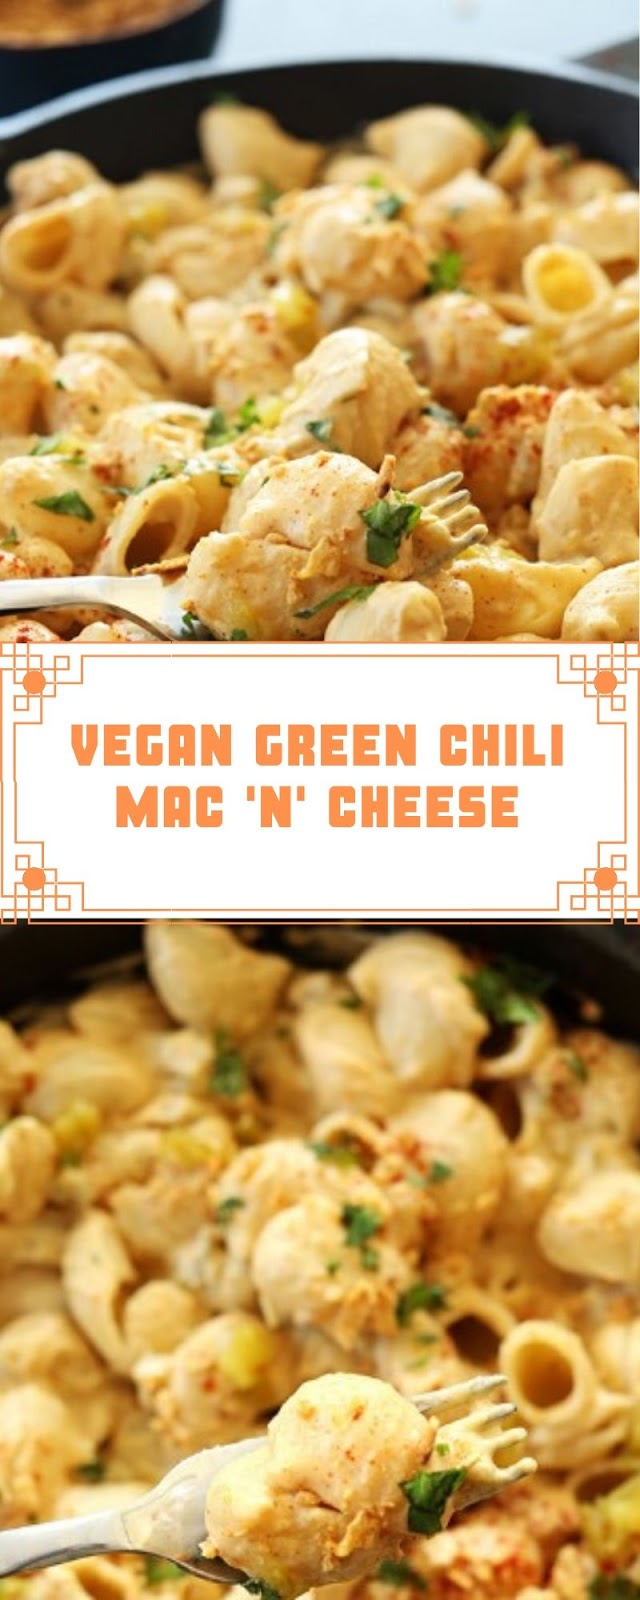 VEGAN GREEN CHILI MAC 'N' CHEESE